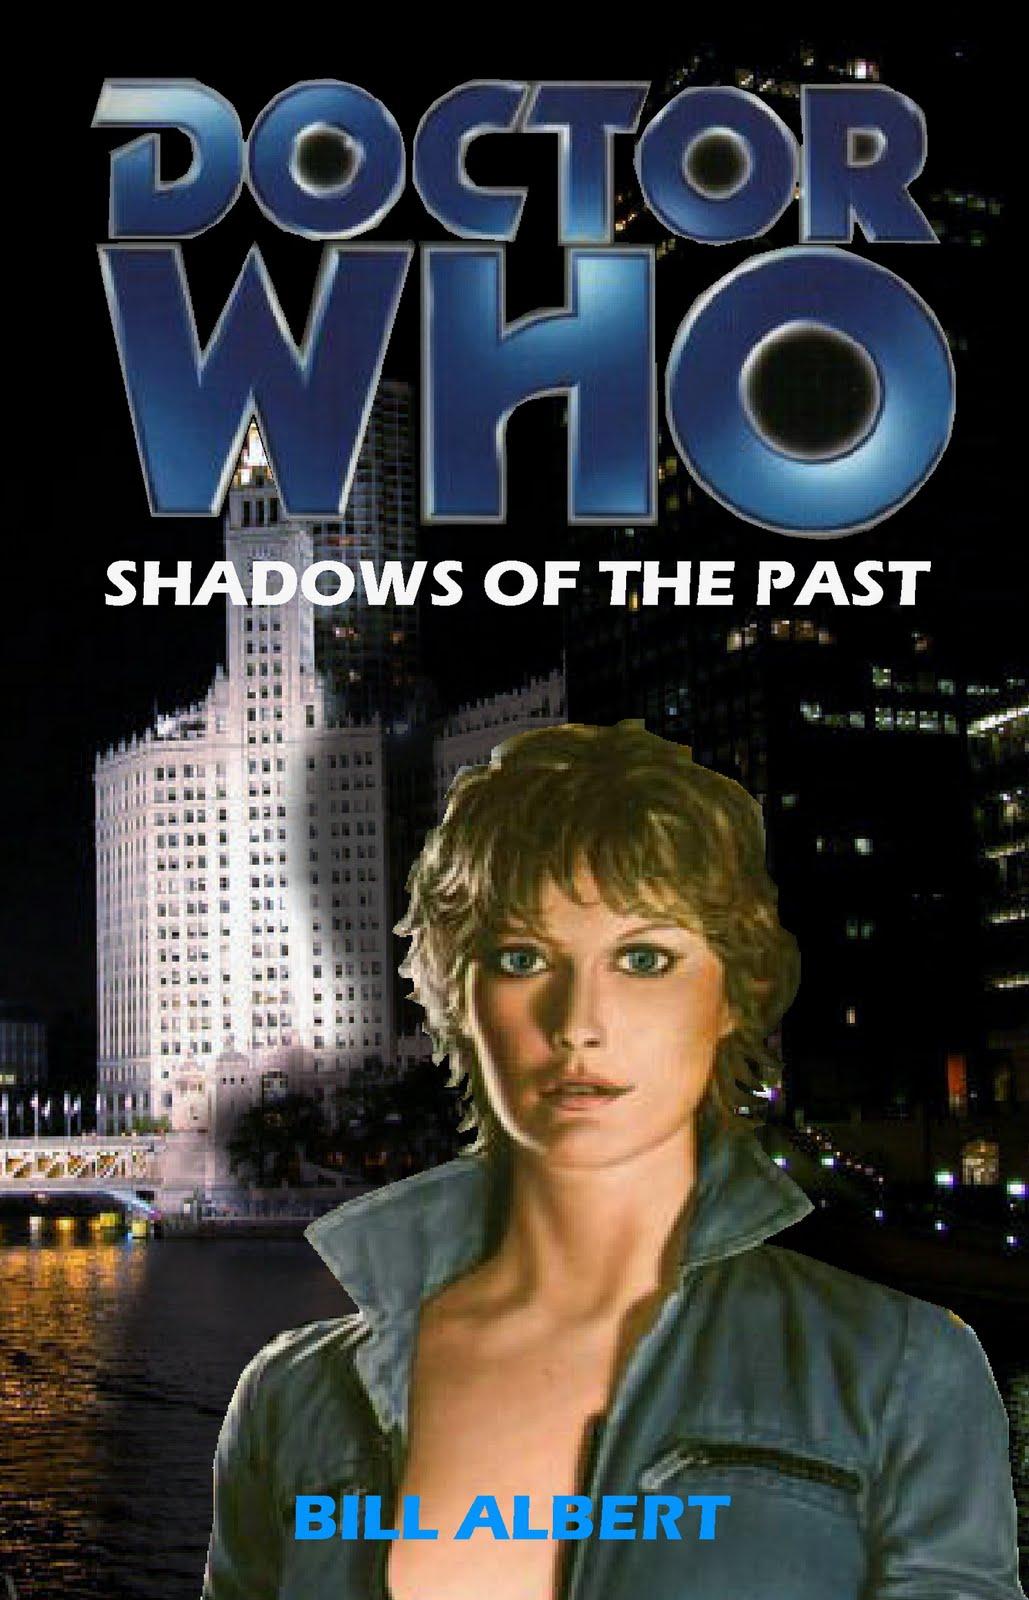 [DR+WHO+SHADOWS+2009+FRONT+LARGE.jpg]